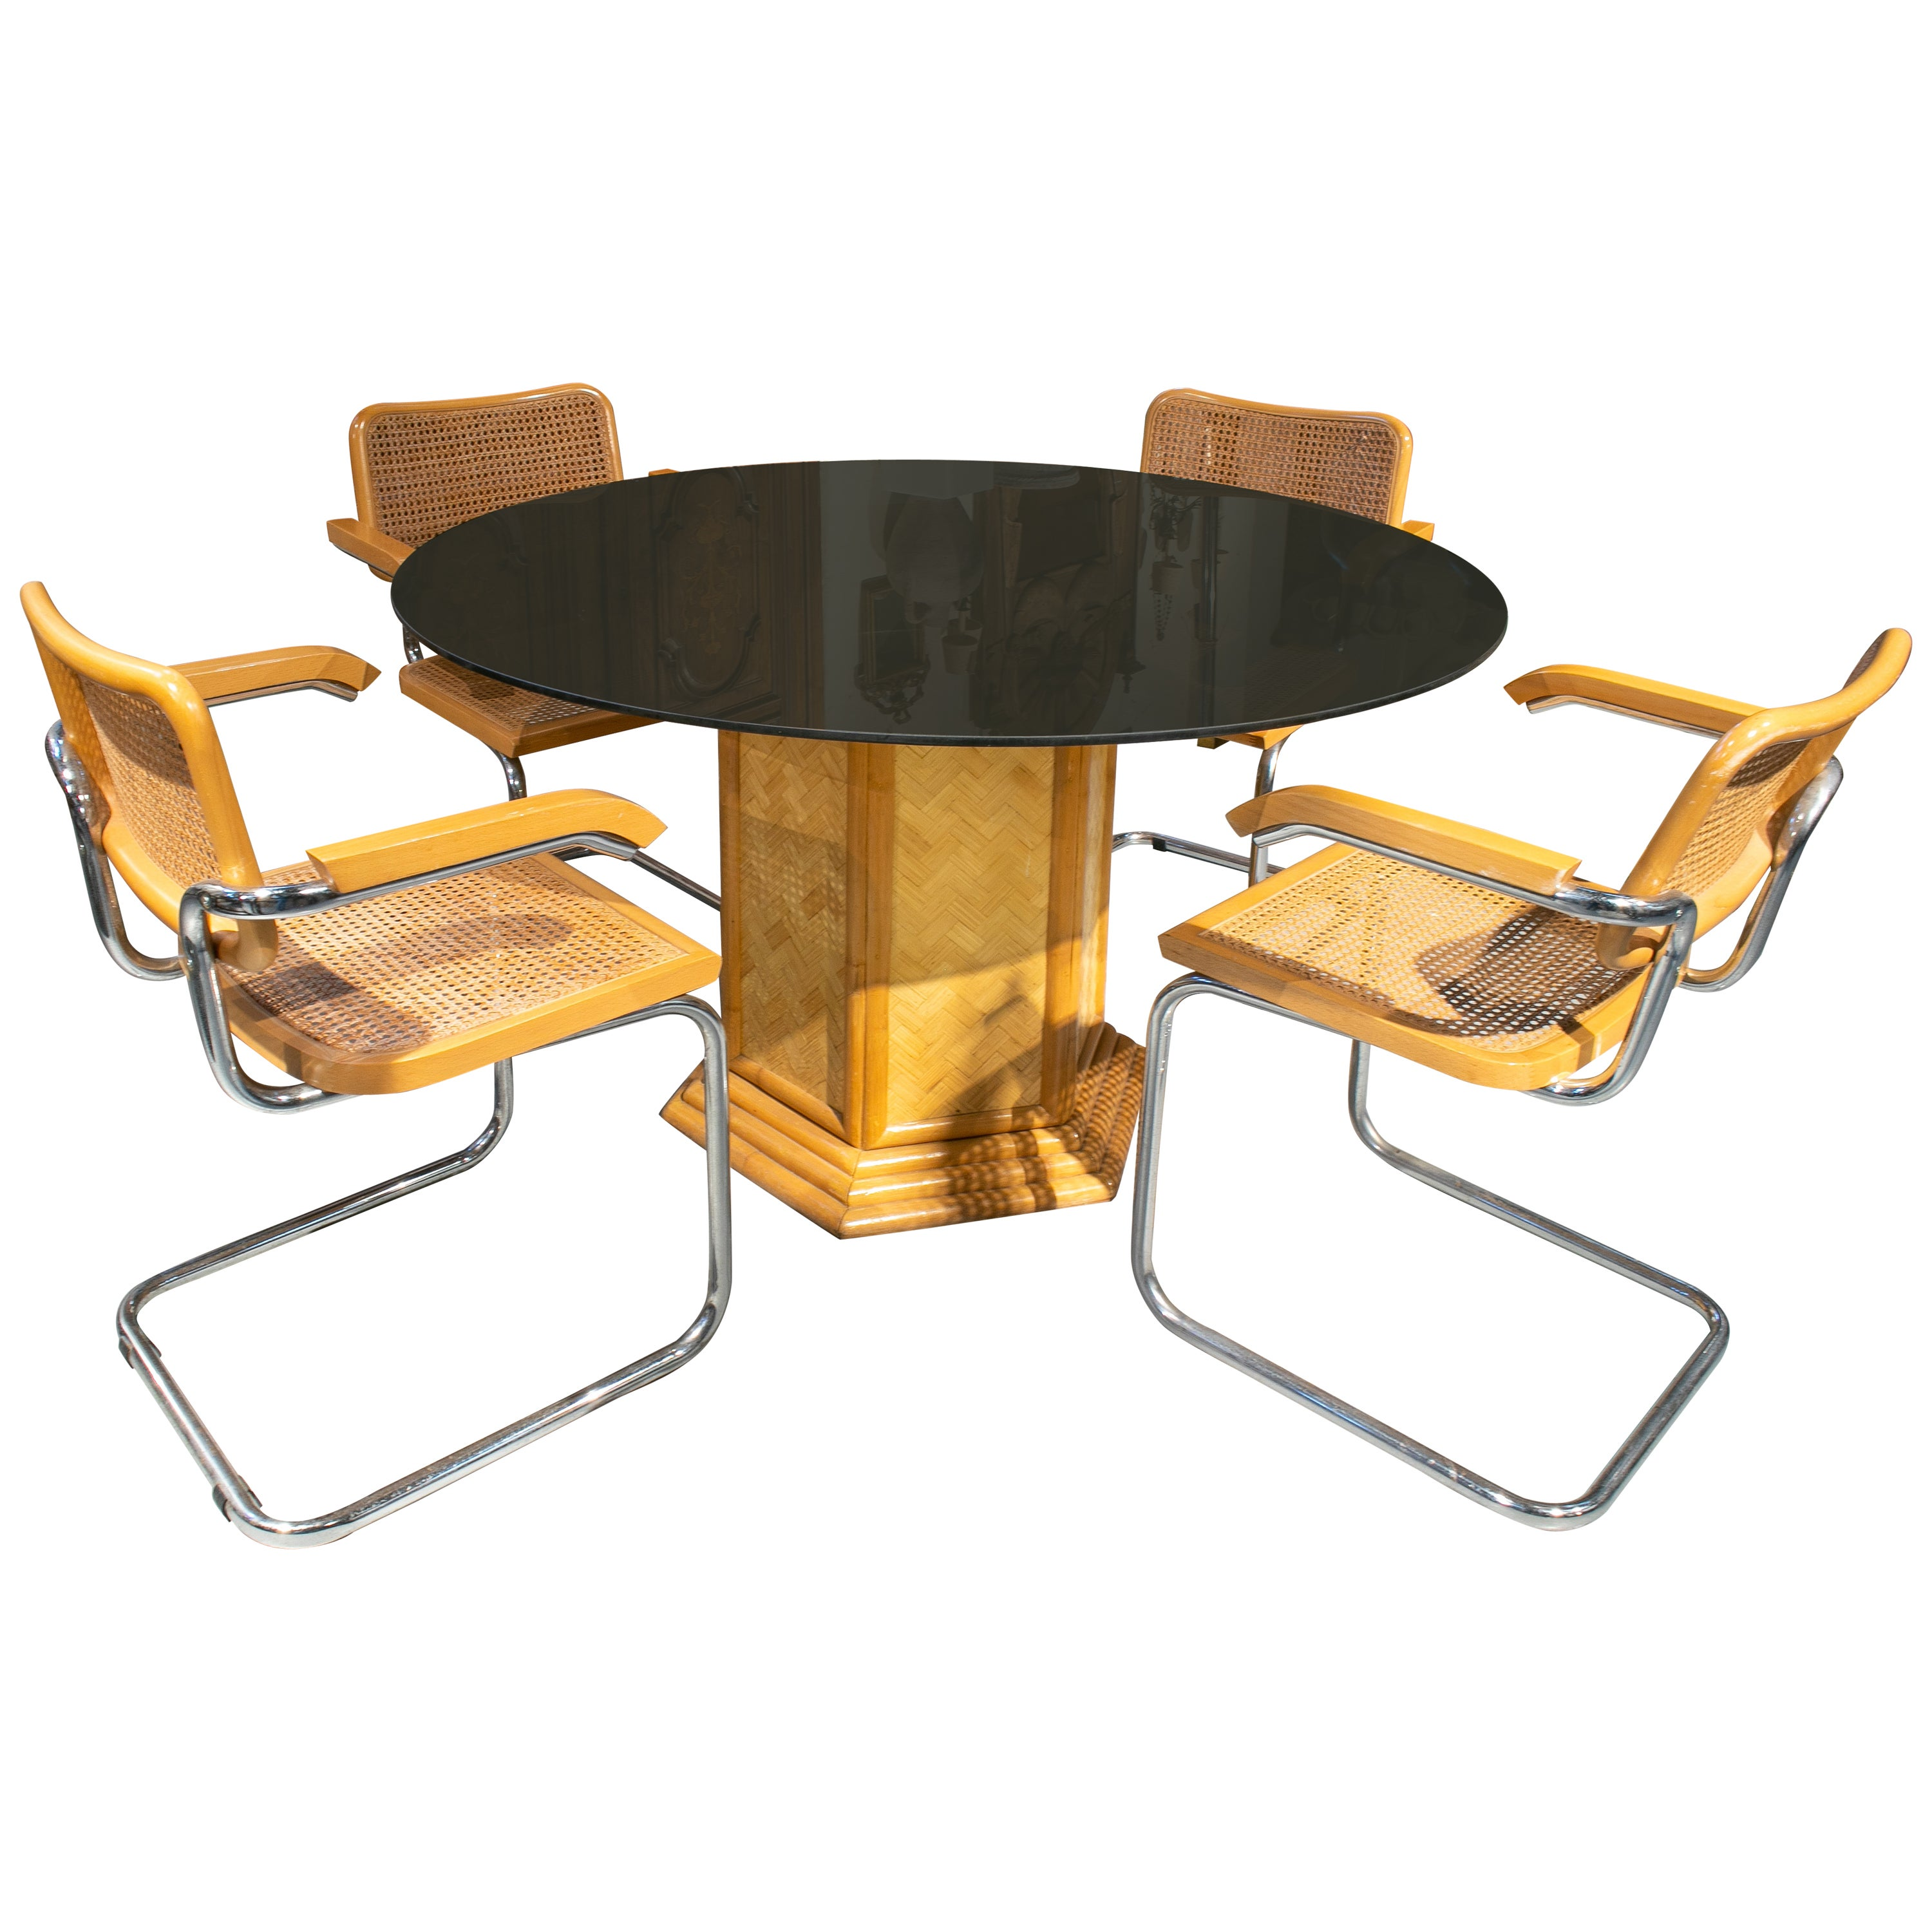 1970s Set of Italian Bamboo and Crystal Table with Four Cesca Chairs